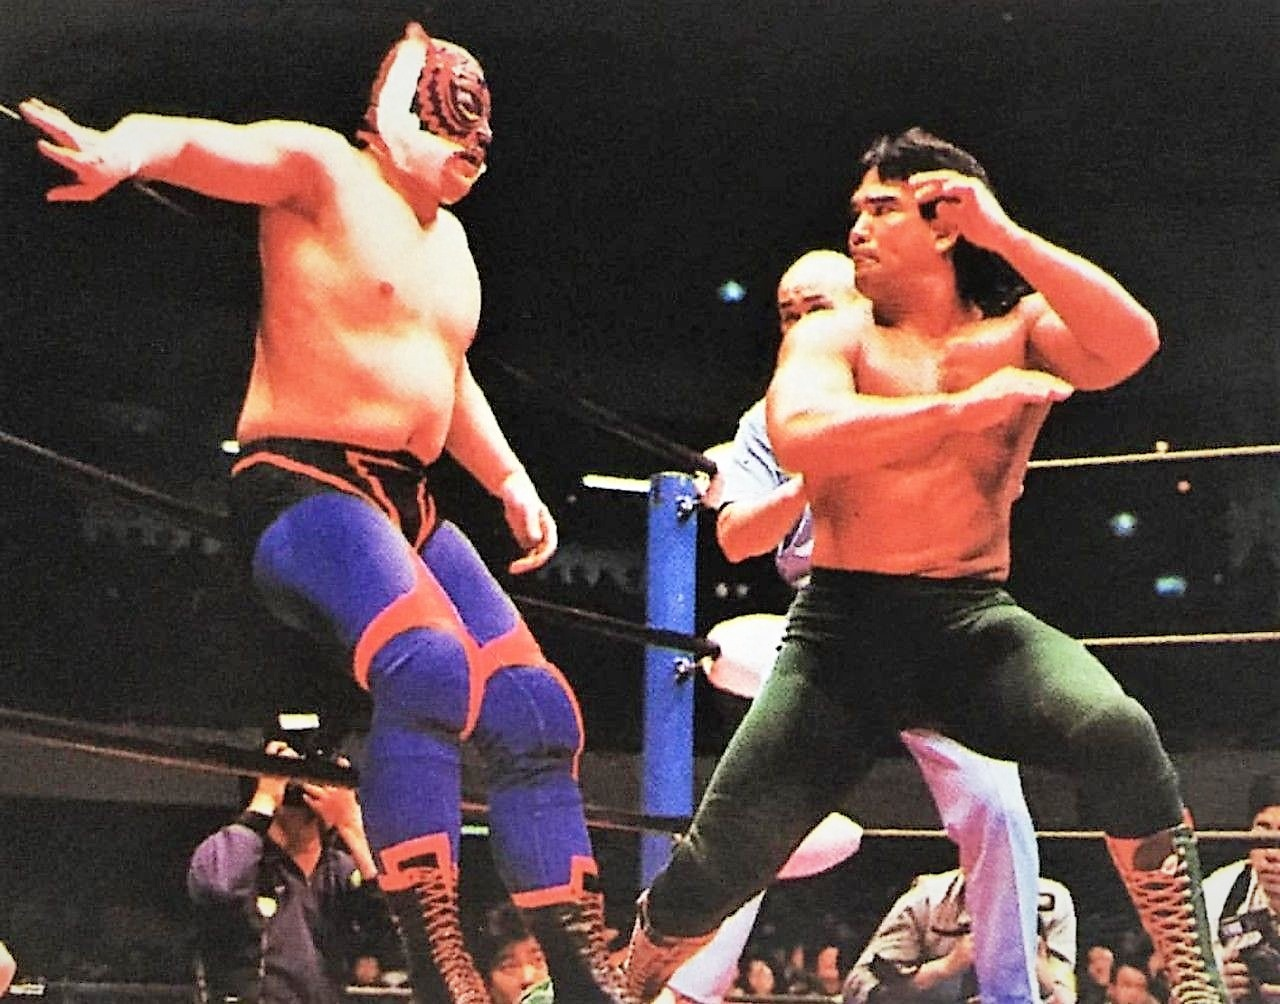 """Wrestling as Tiger Mask II, Mitsuharu Misawa faced top opponents like Ricky """"The Dragon"""" Steamboat in 1989 for the NWA World Heavyweight Title."""